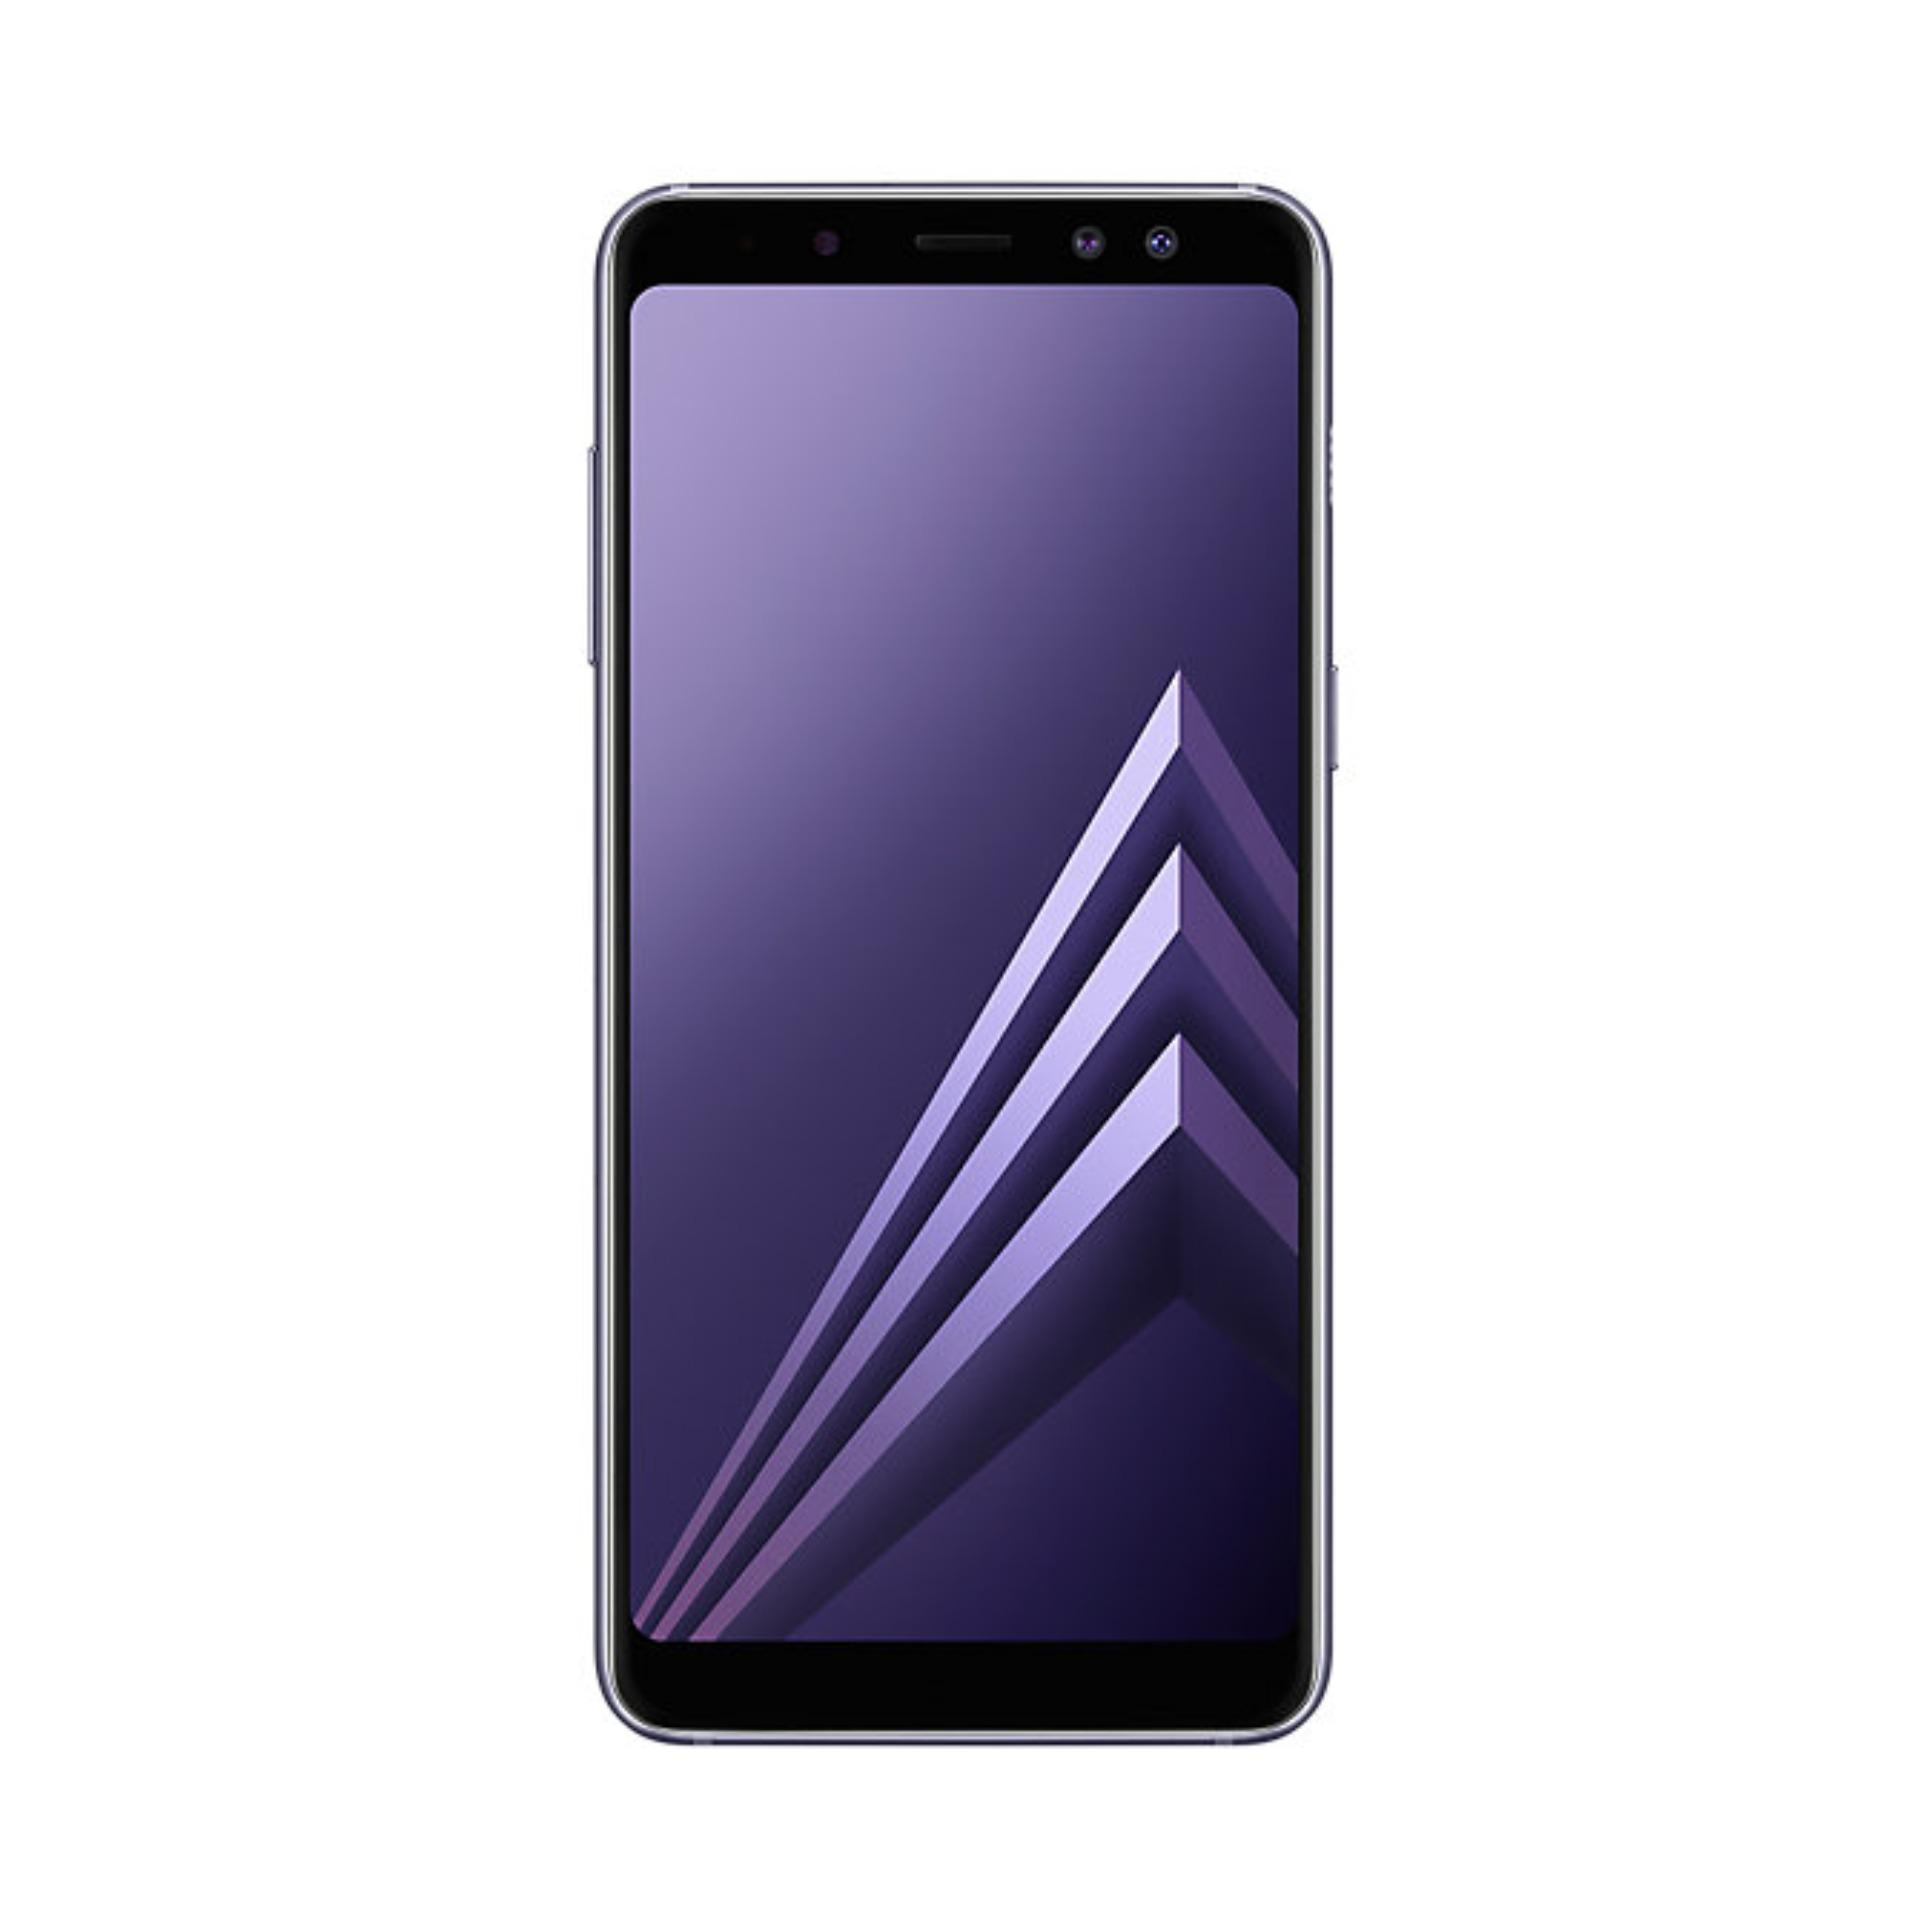 Samsung Galaxy A8 Plus 2018 - 6/64 GB - 4G LTE - Orchid Grey